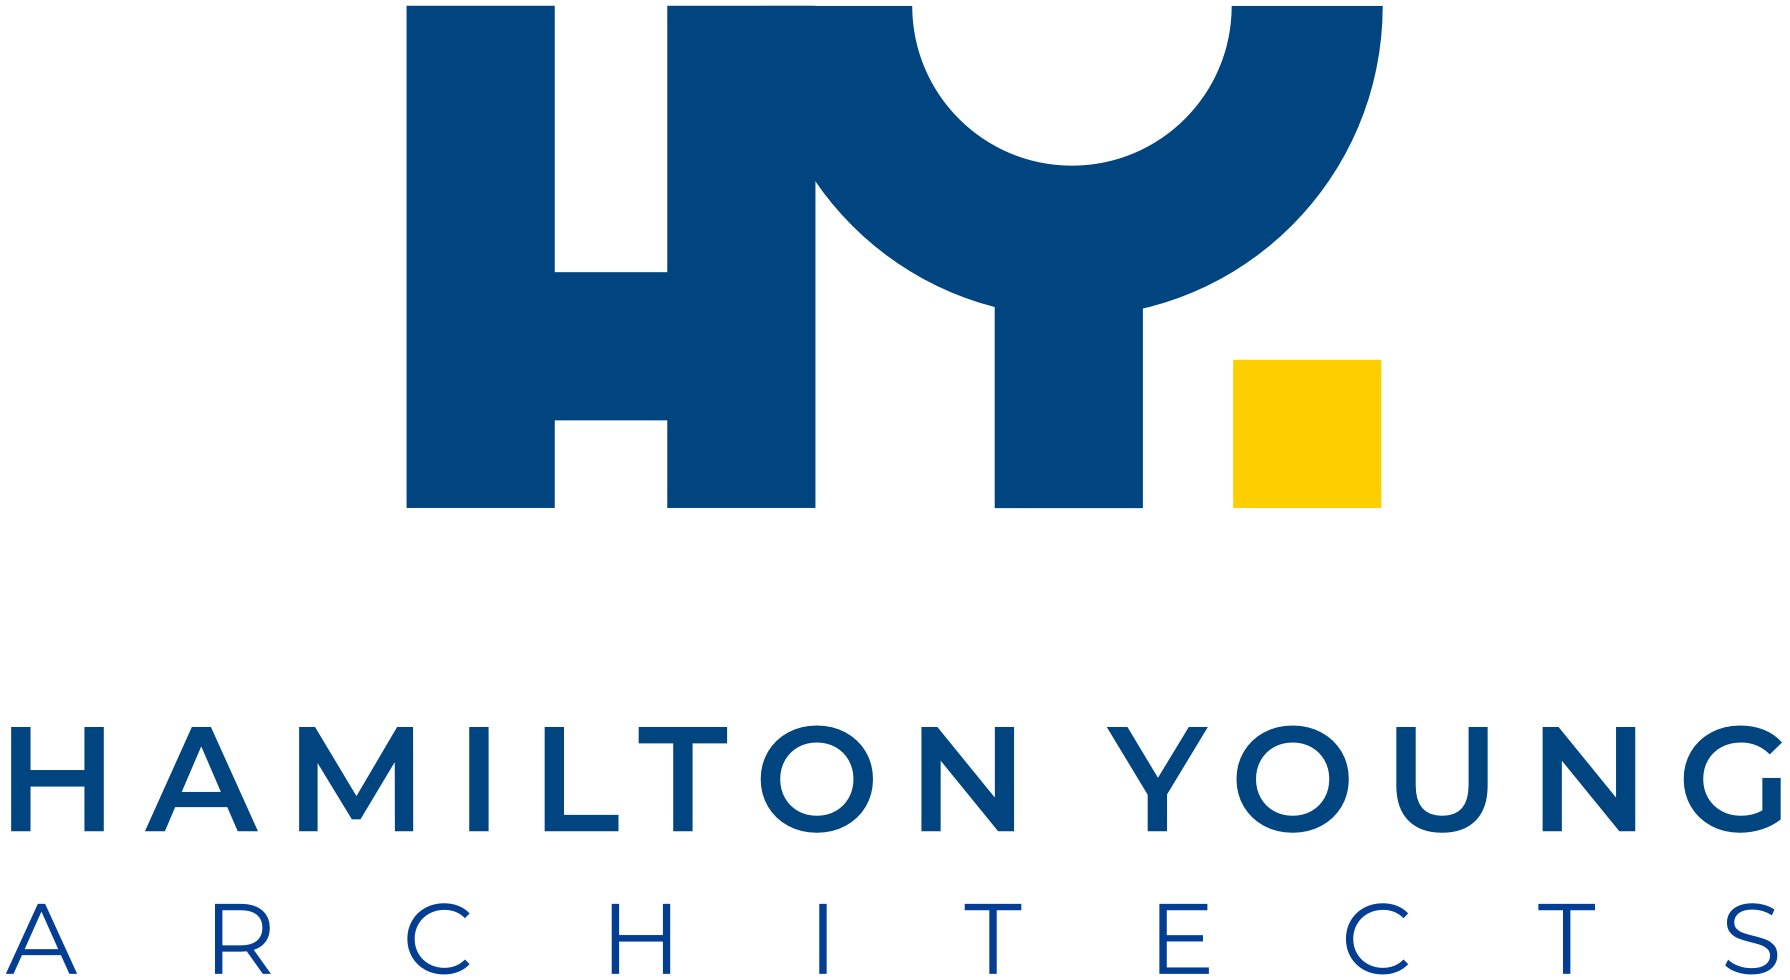 Hamilton Young Architects